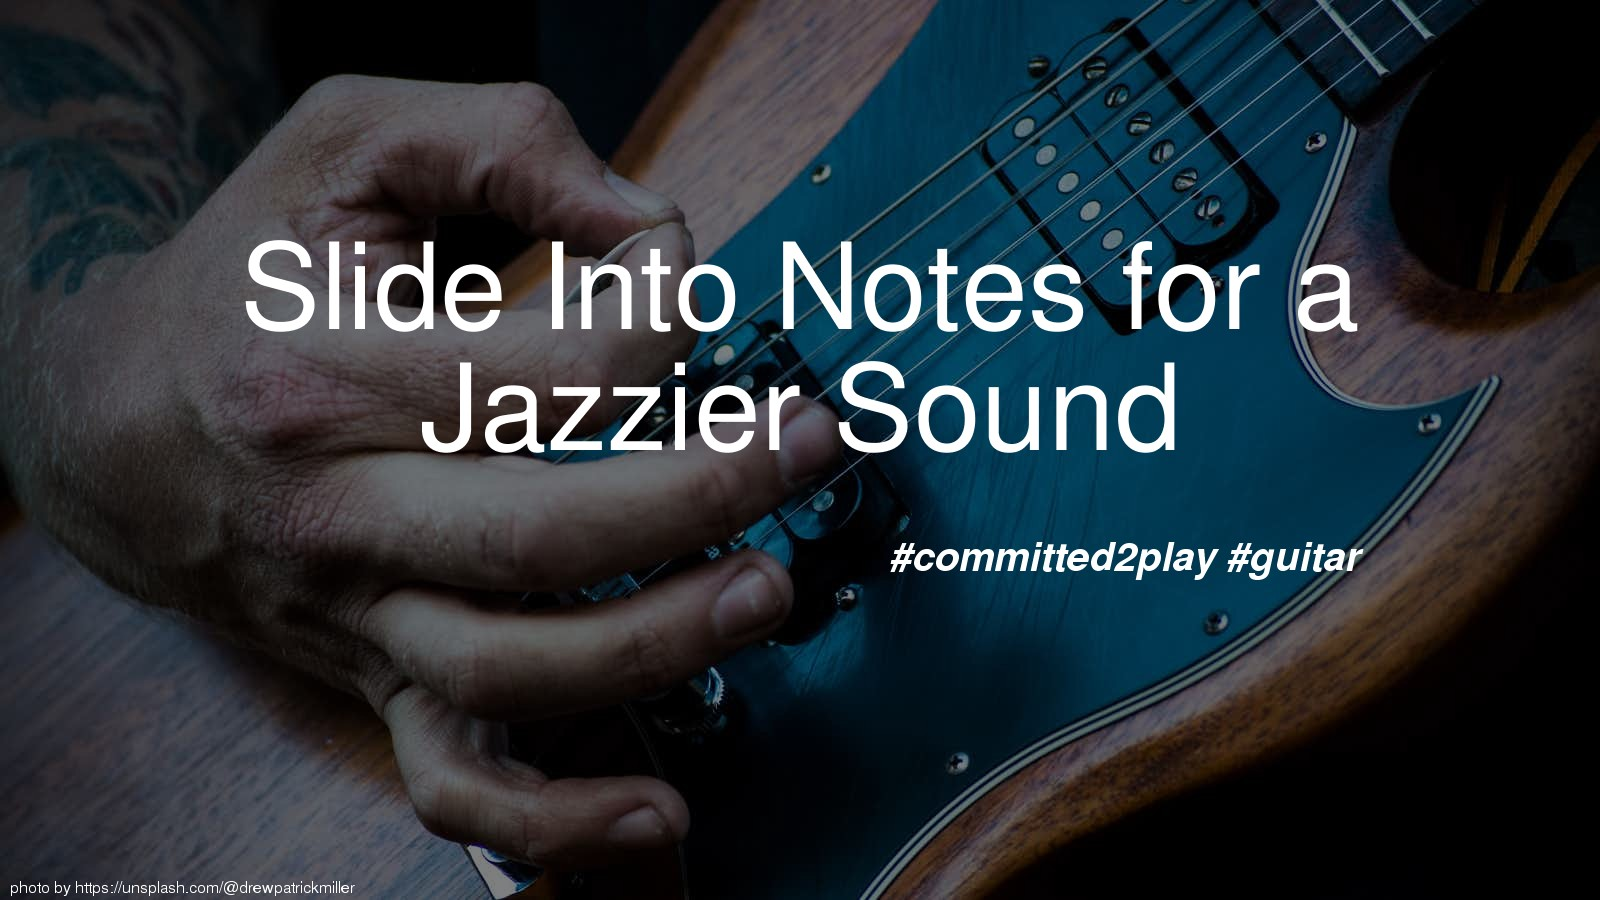 Slide Into Notes for a Jazzier Sound